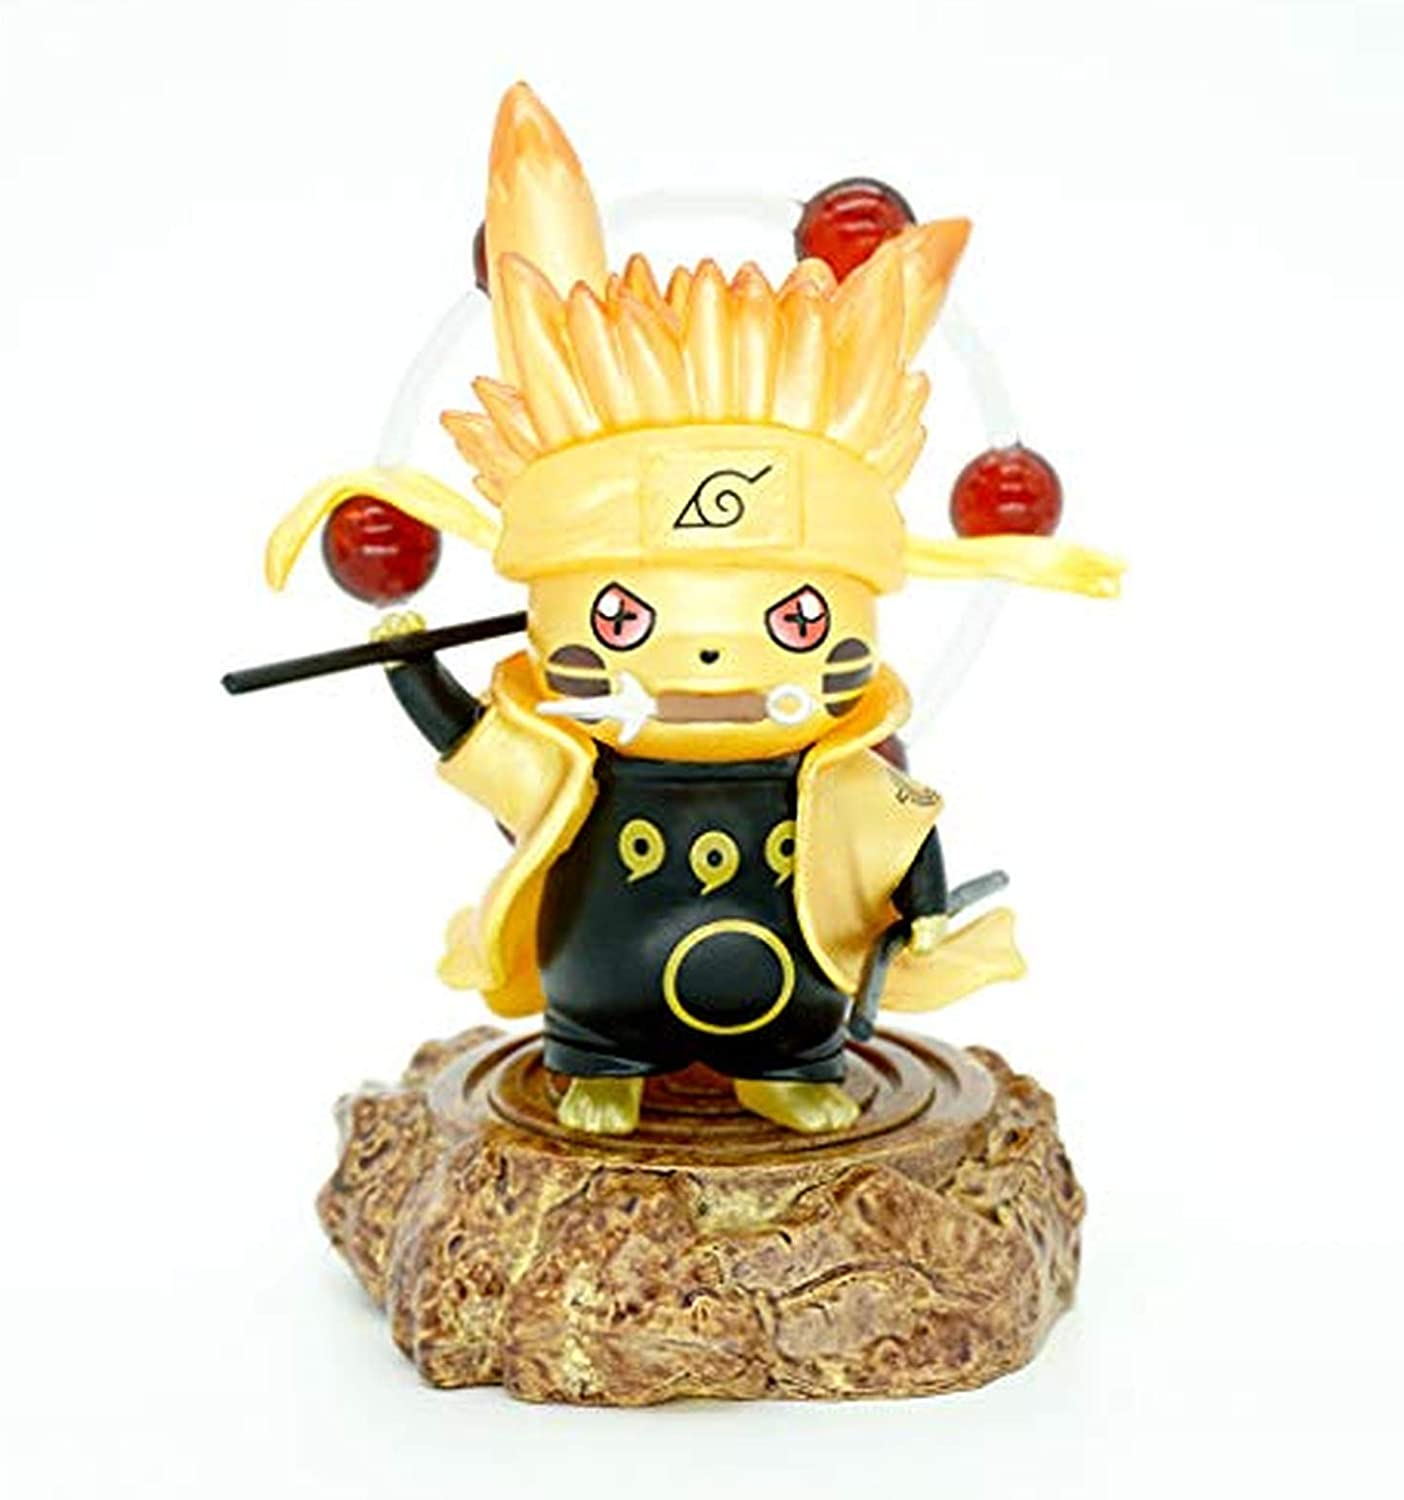 Fglpbr Naruto Pikachu Action Figure Cosplay Obito Model Anime Statue Doll Birthday Gift